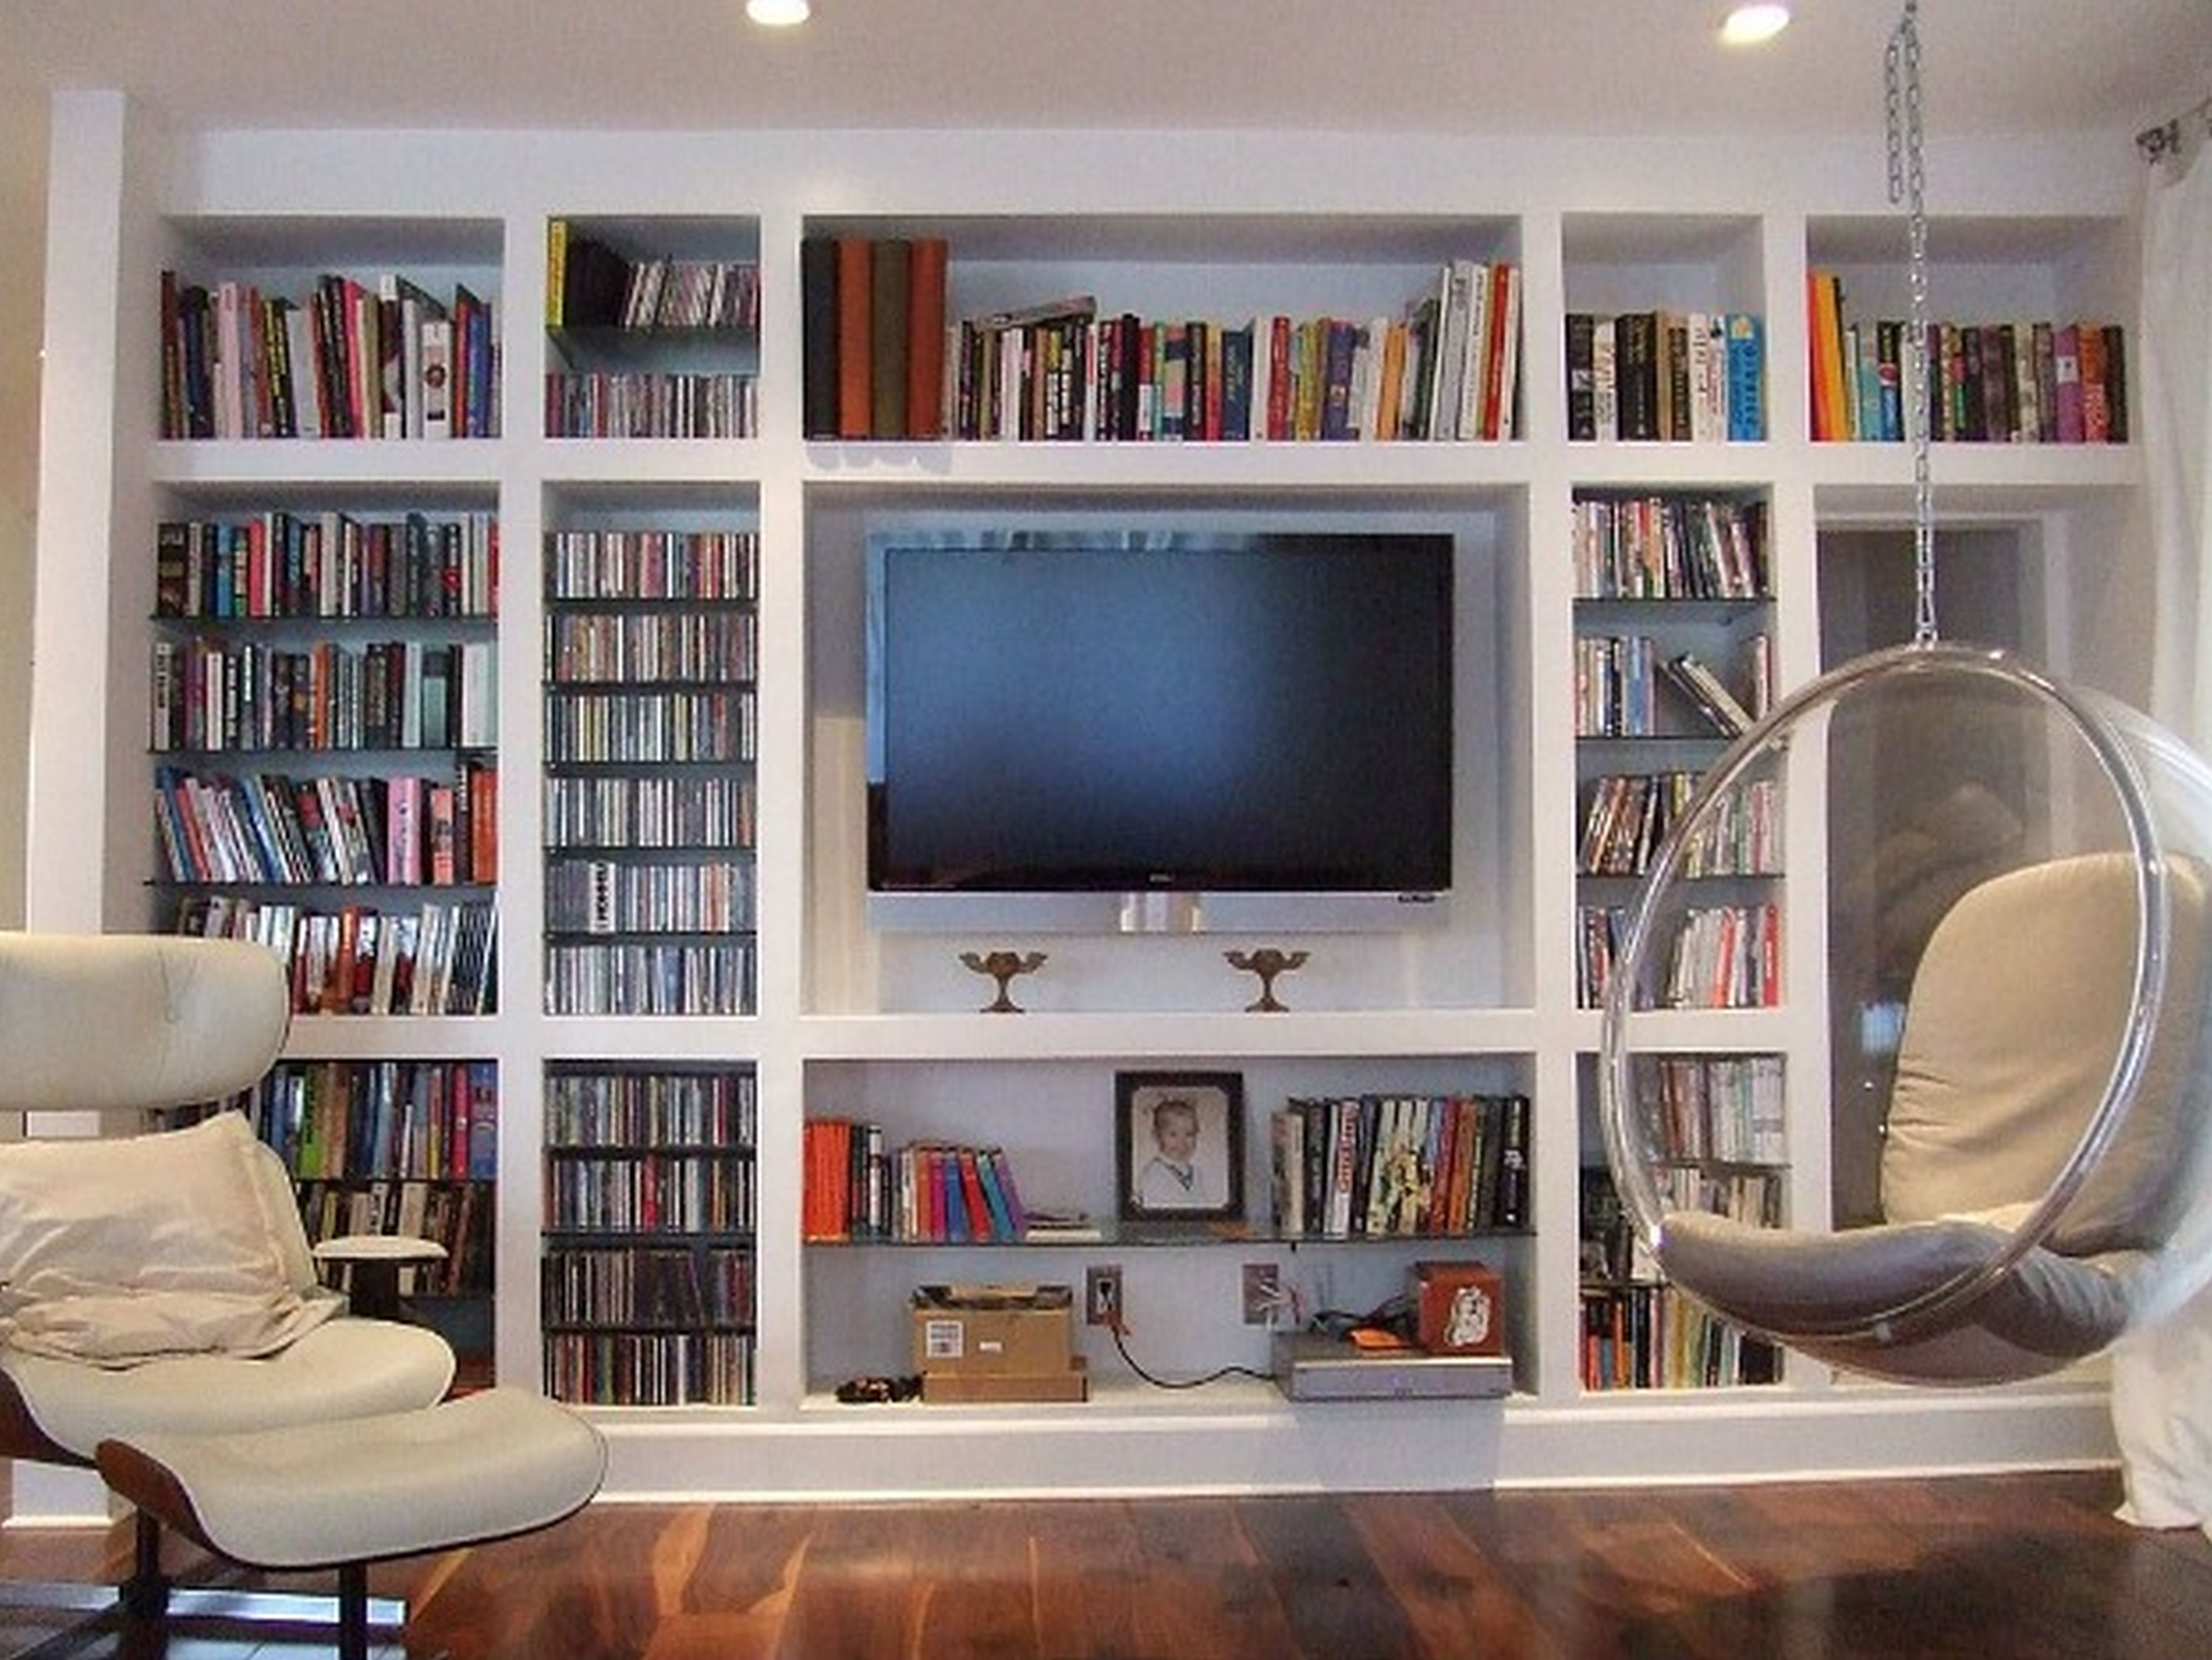 Bookshelves With Tv Space How To Build Around Fireplace Turn With Popular Bookcases With Tv Space (View 3 of 15)